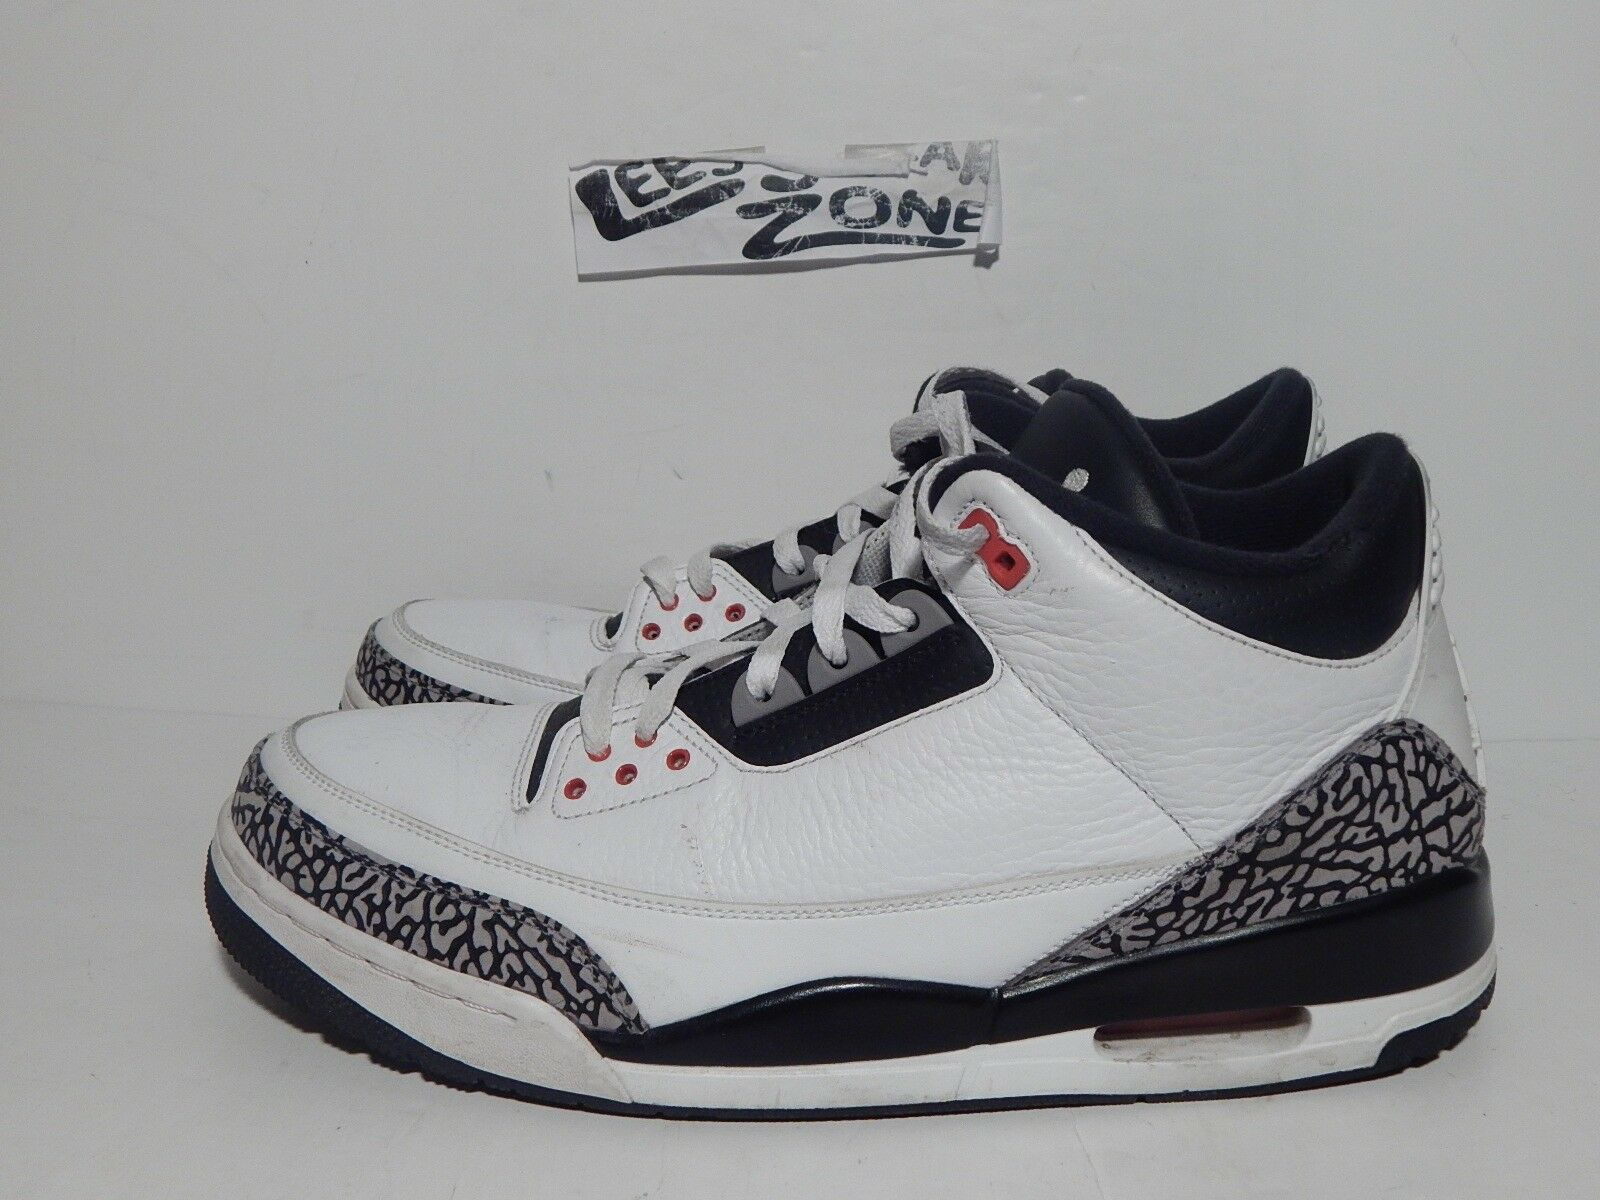 competitive price dd5f0 793b4 2014 nike nike nike air jordan 3 rétro de race noire infrarouge sz 13 88  136064